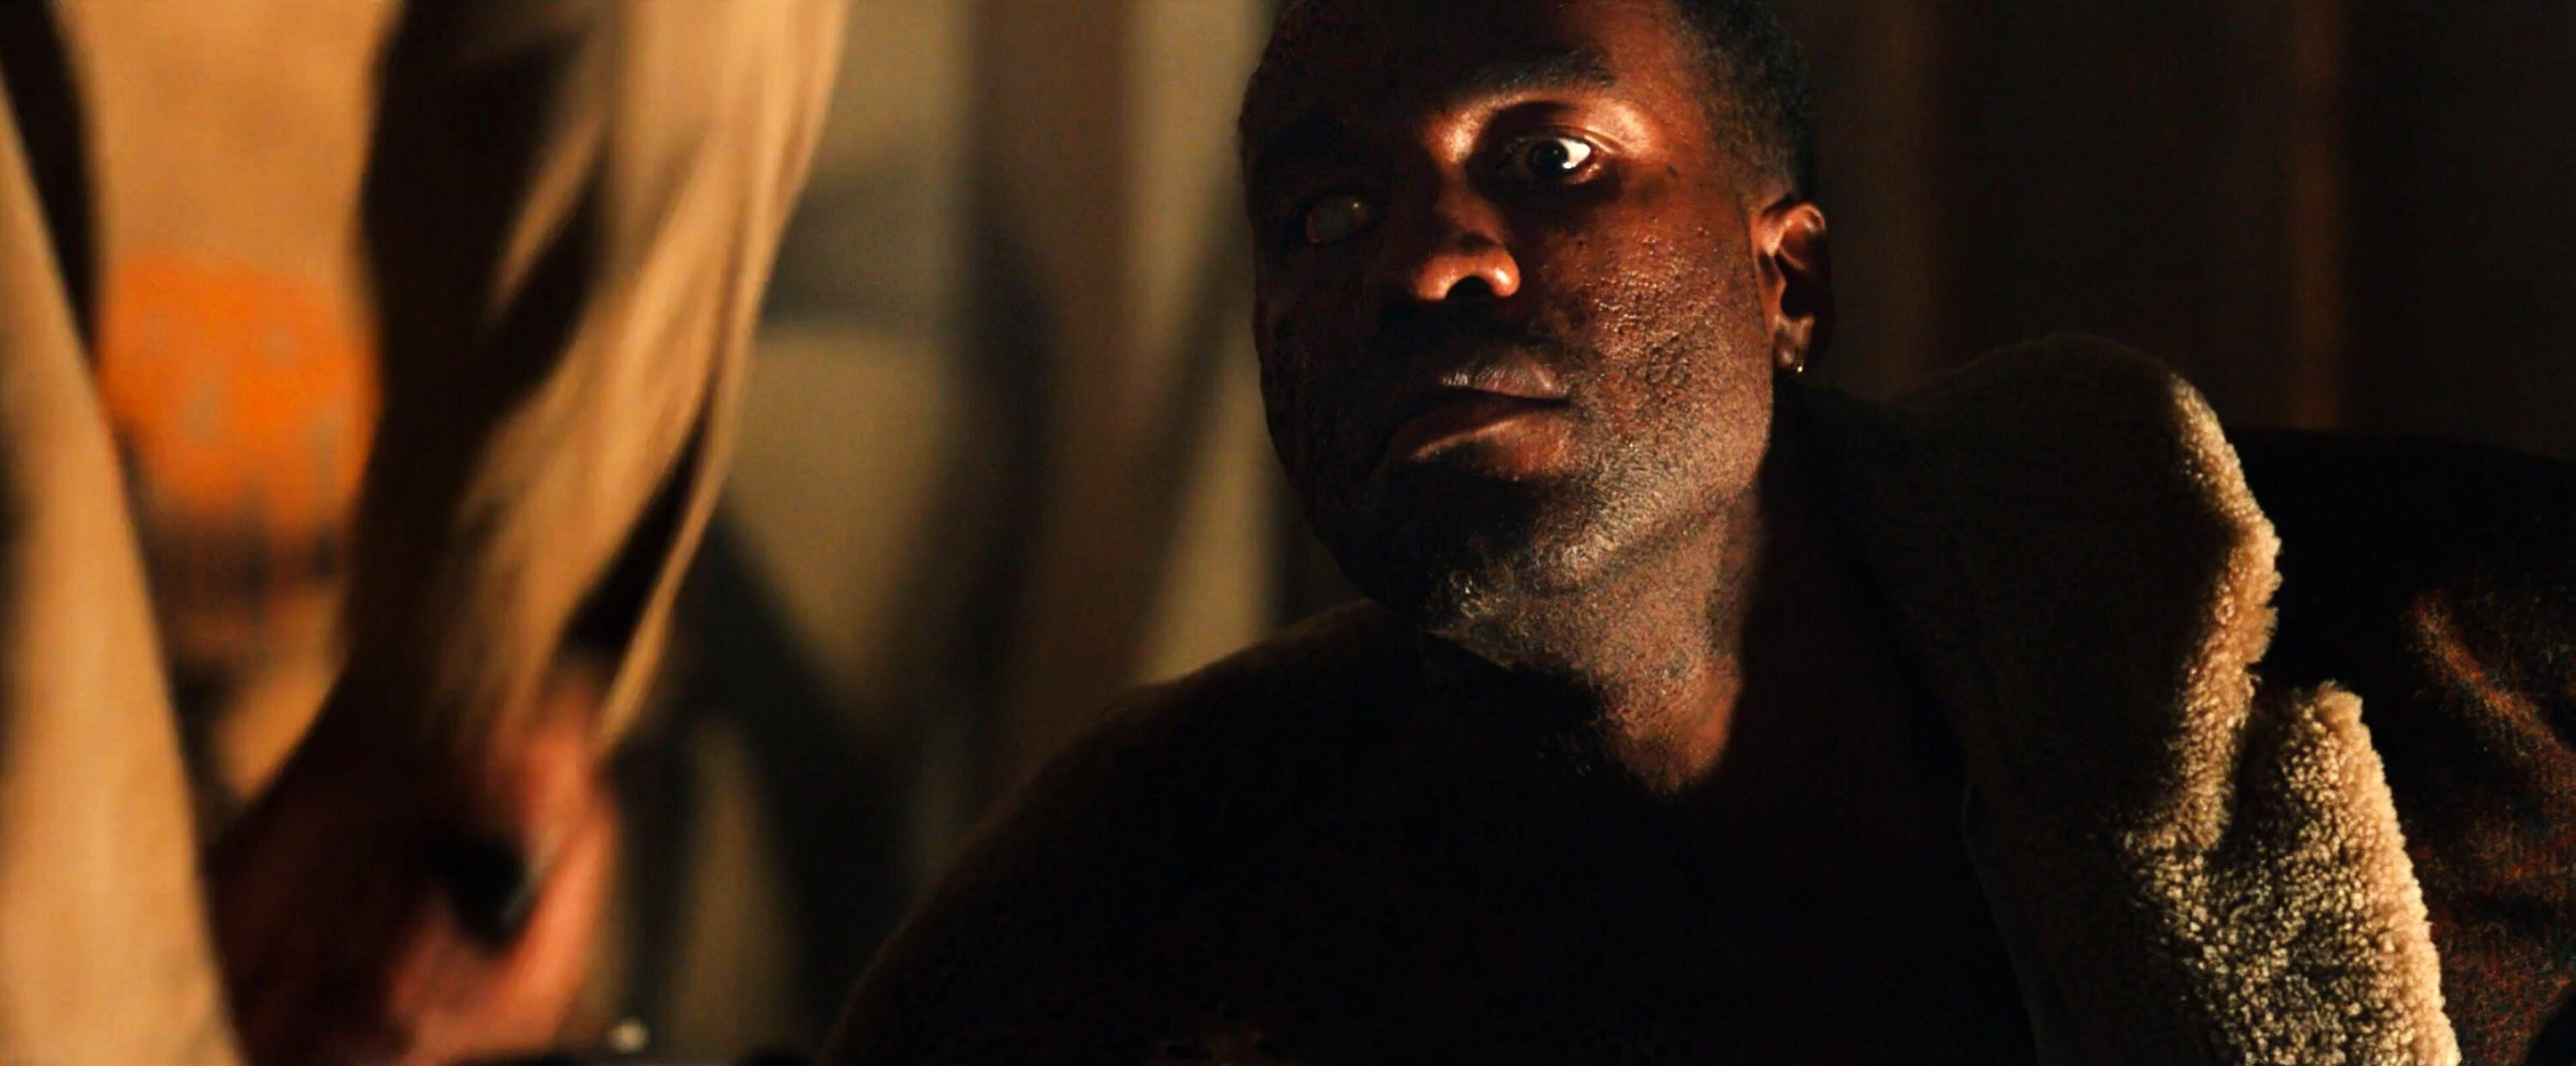 Tony Todd in the new Candyman